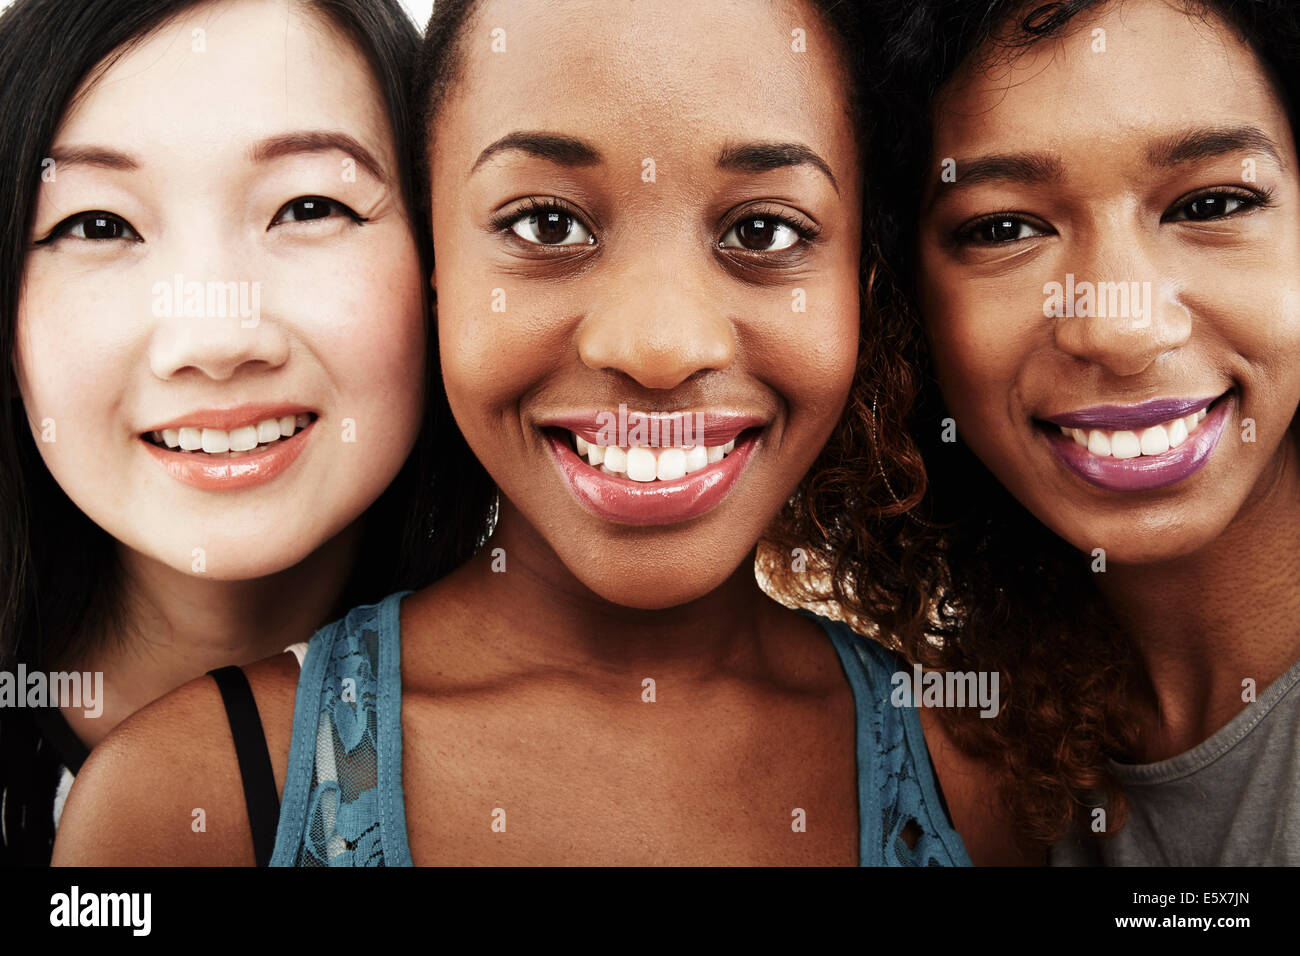 Close up studio portrait of three smiling young women - Stock Image